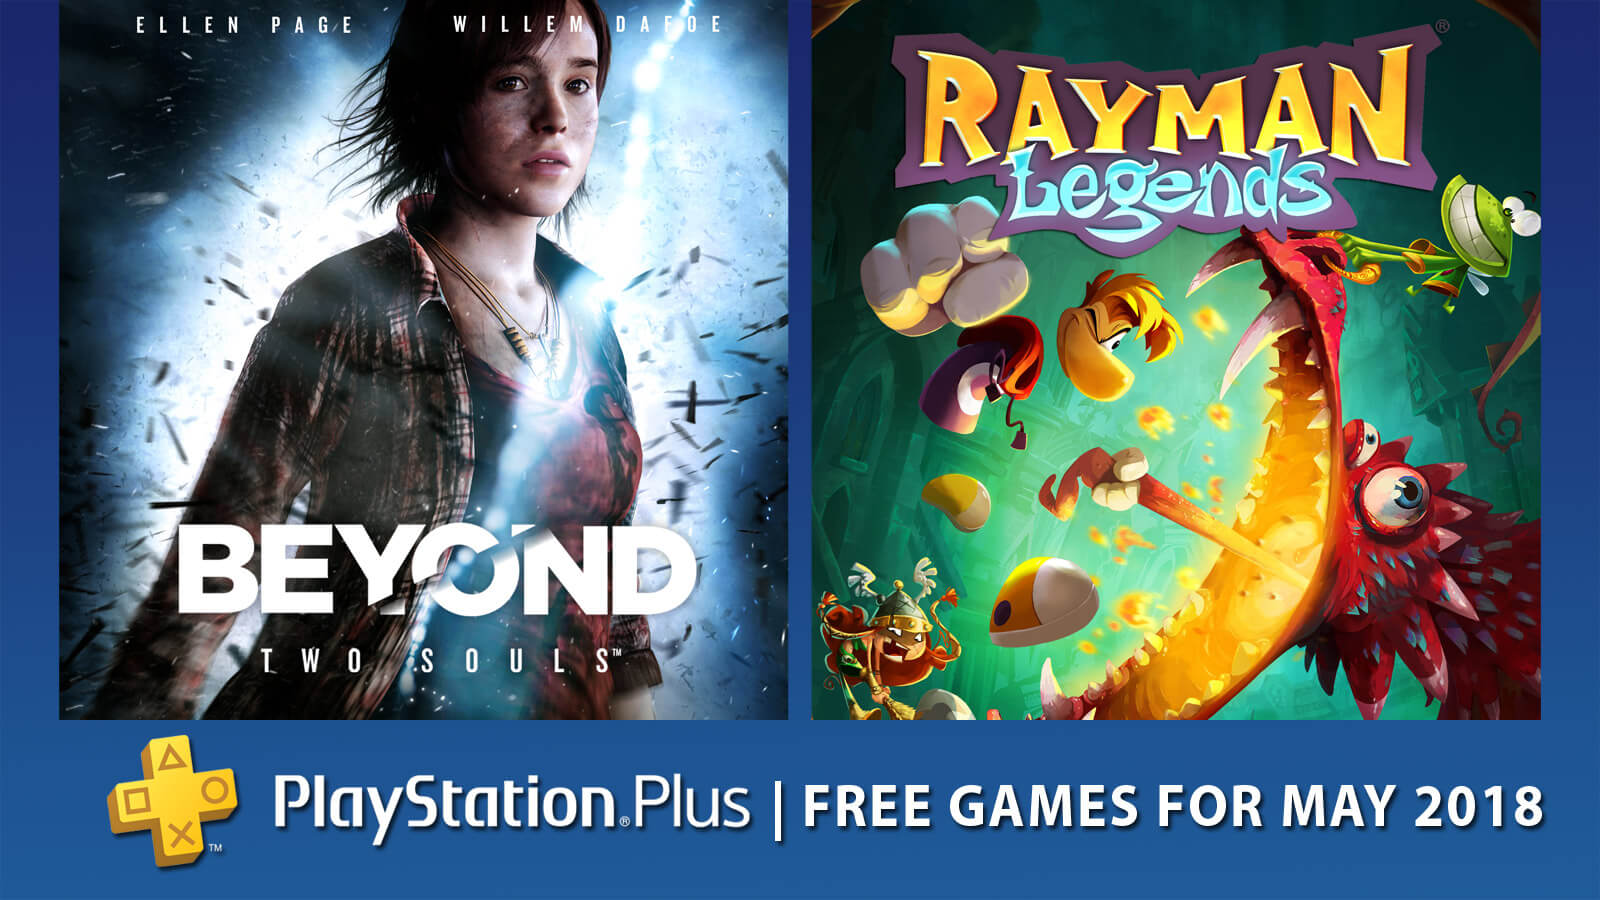 PlayStation Plus Free Games For May 2018 - Gameslaught